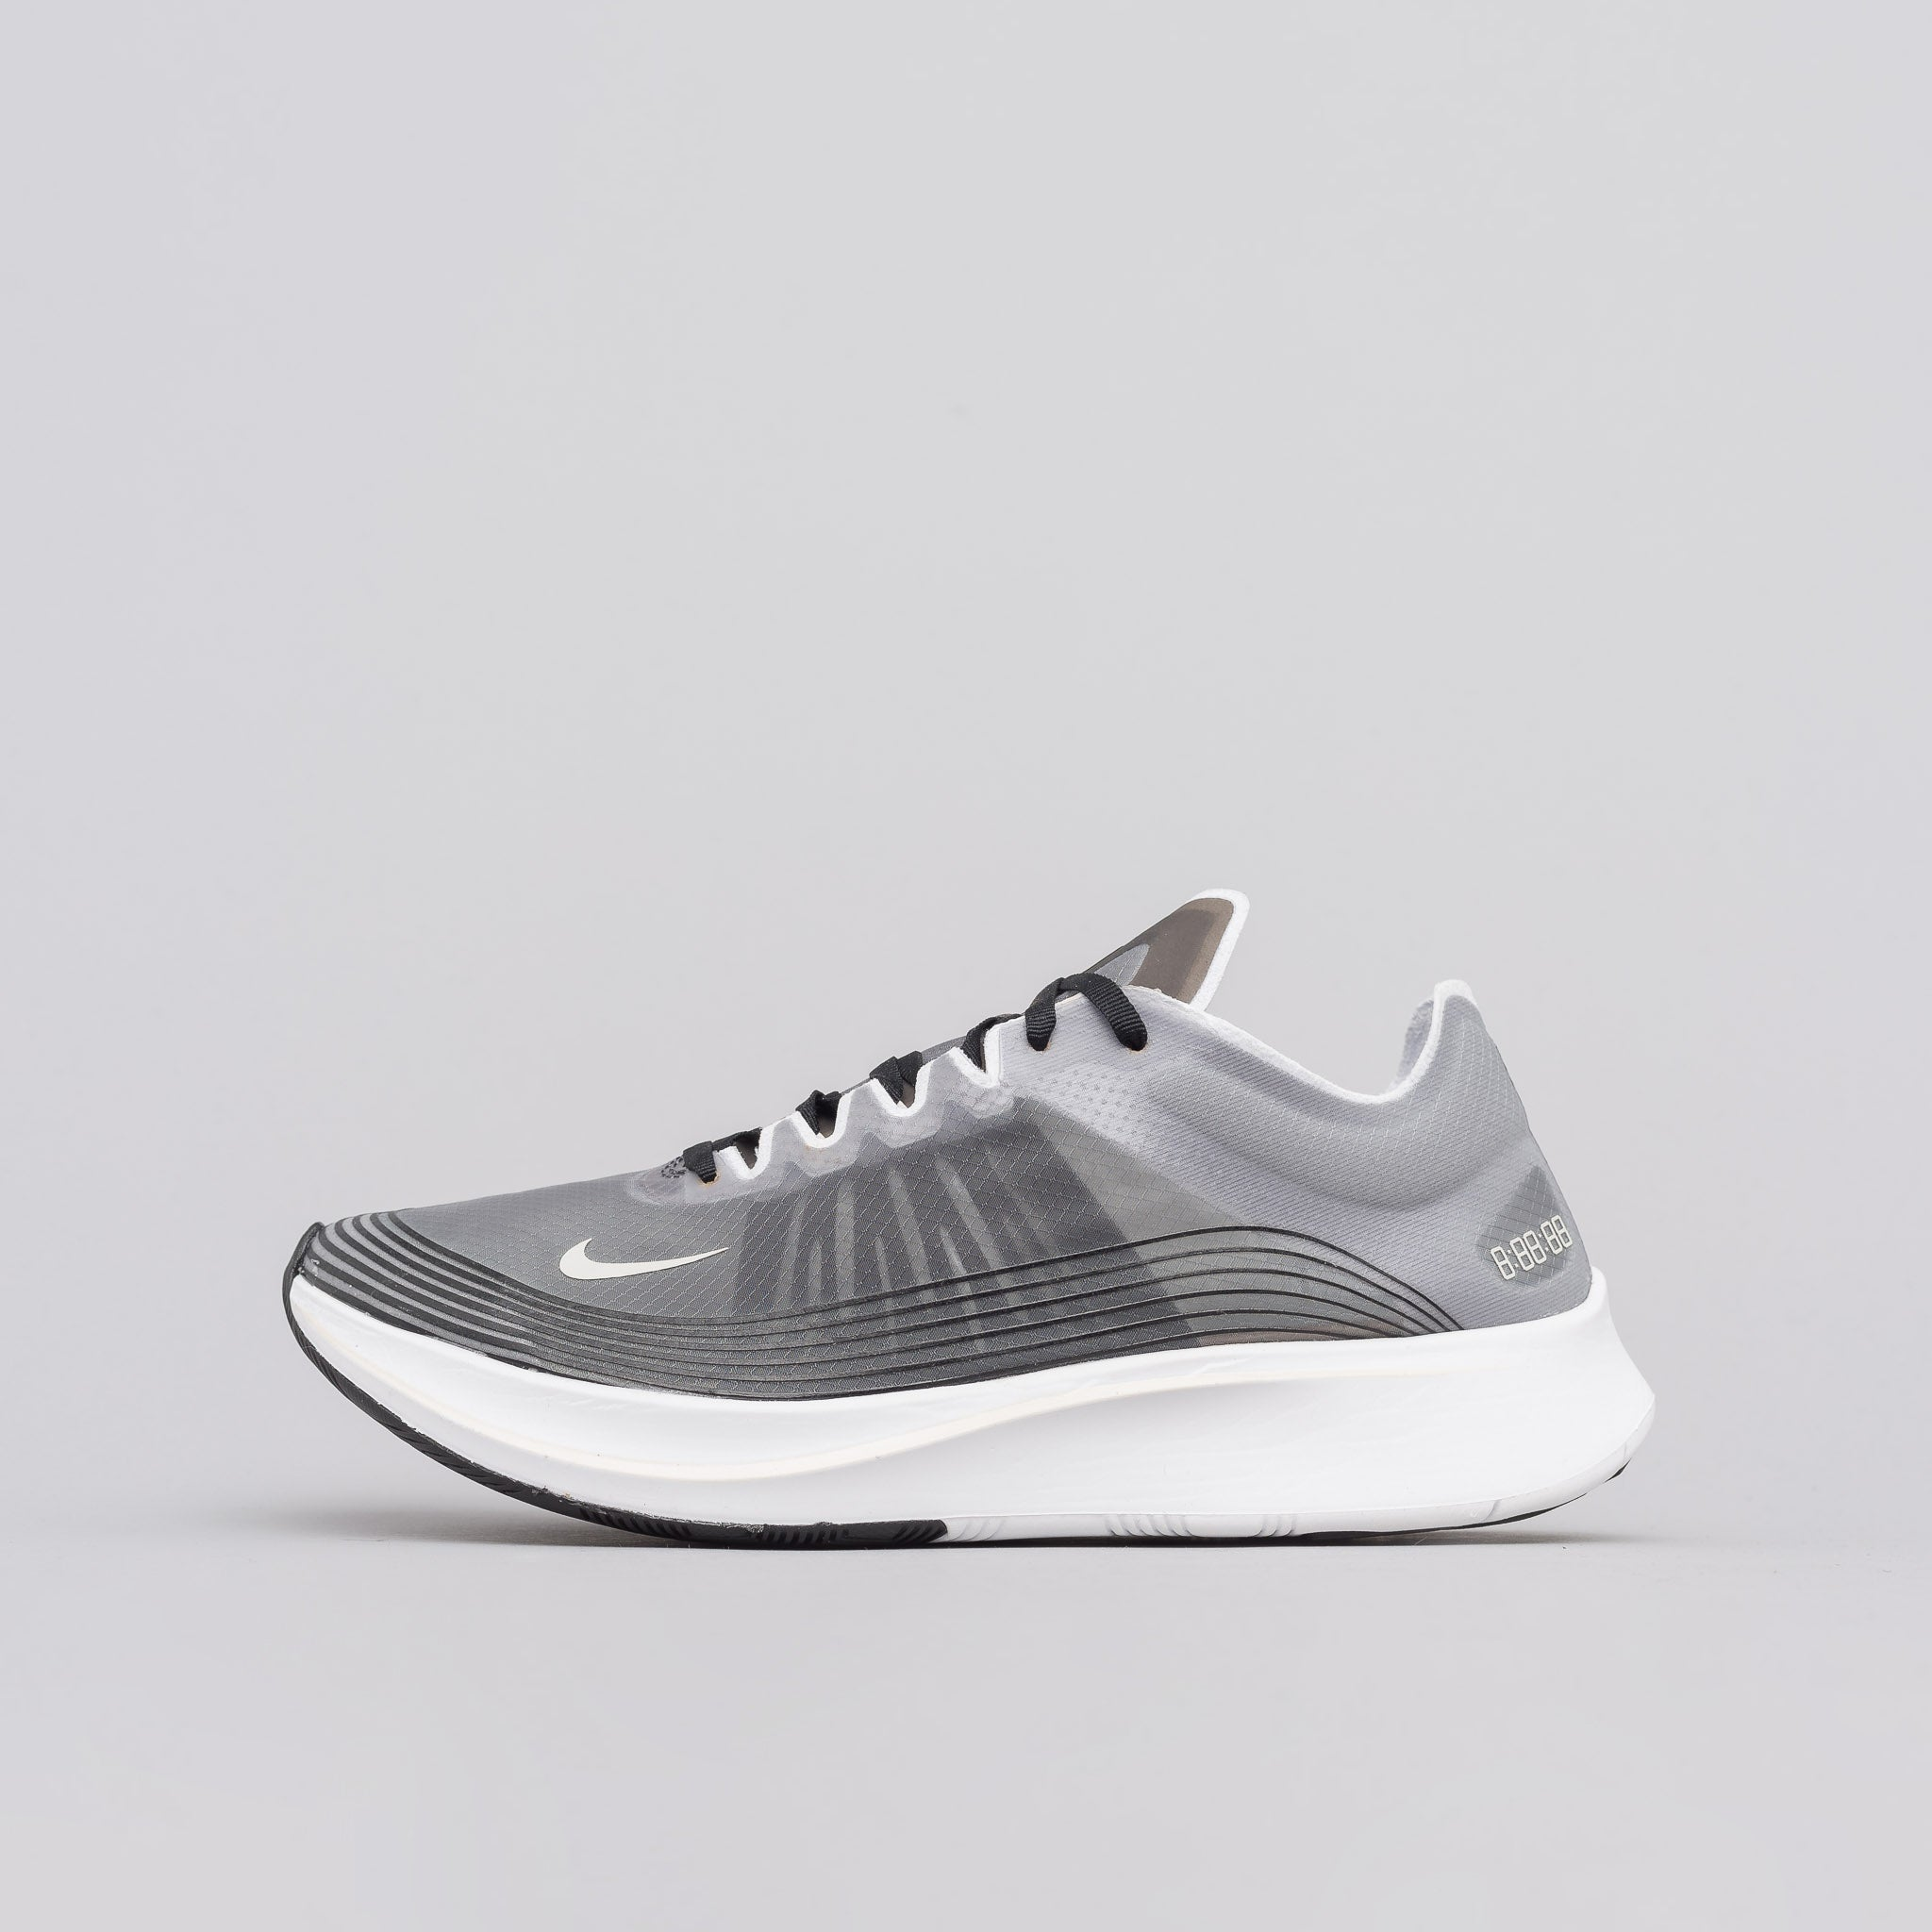 Zoom Fly SP in BlackLight Bone. Nike